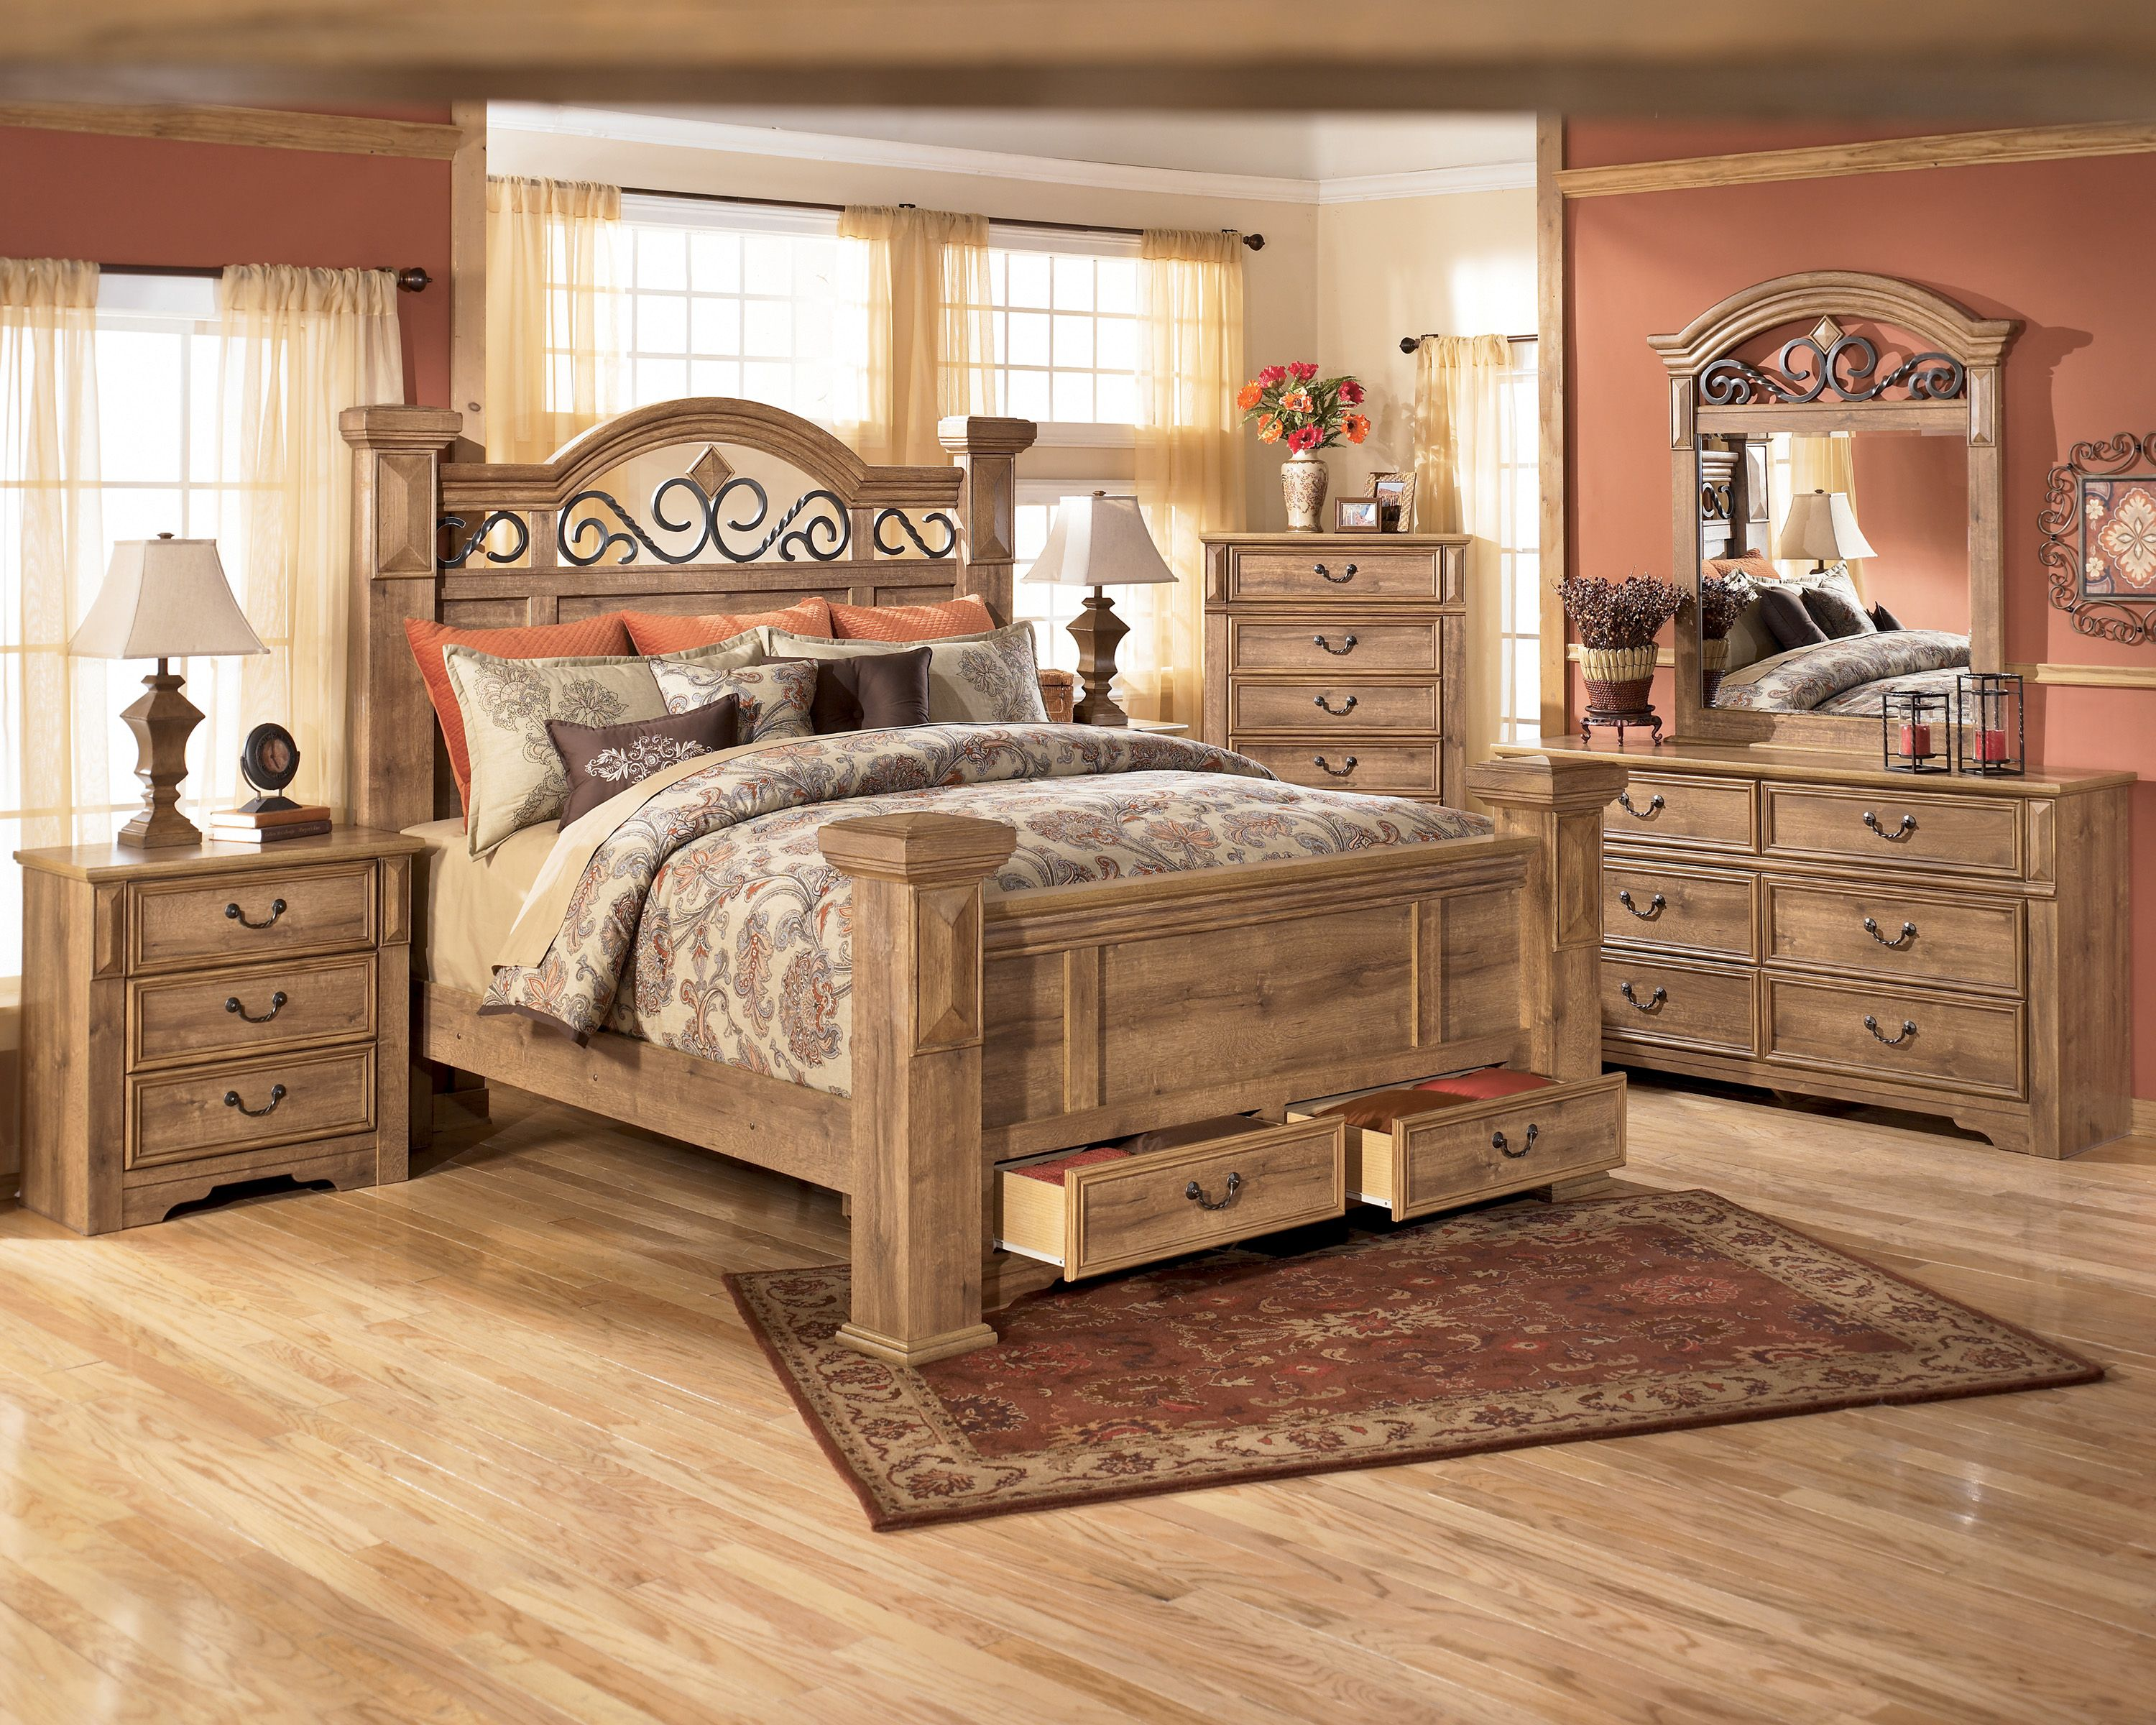 Wooden bed furniture design - King Bedroom Furniture Gloria King Size Complete Bedroom Set Rosalinda Furniture Best King